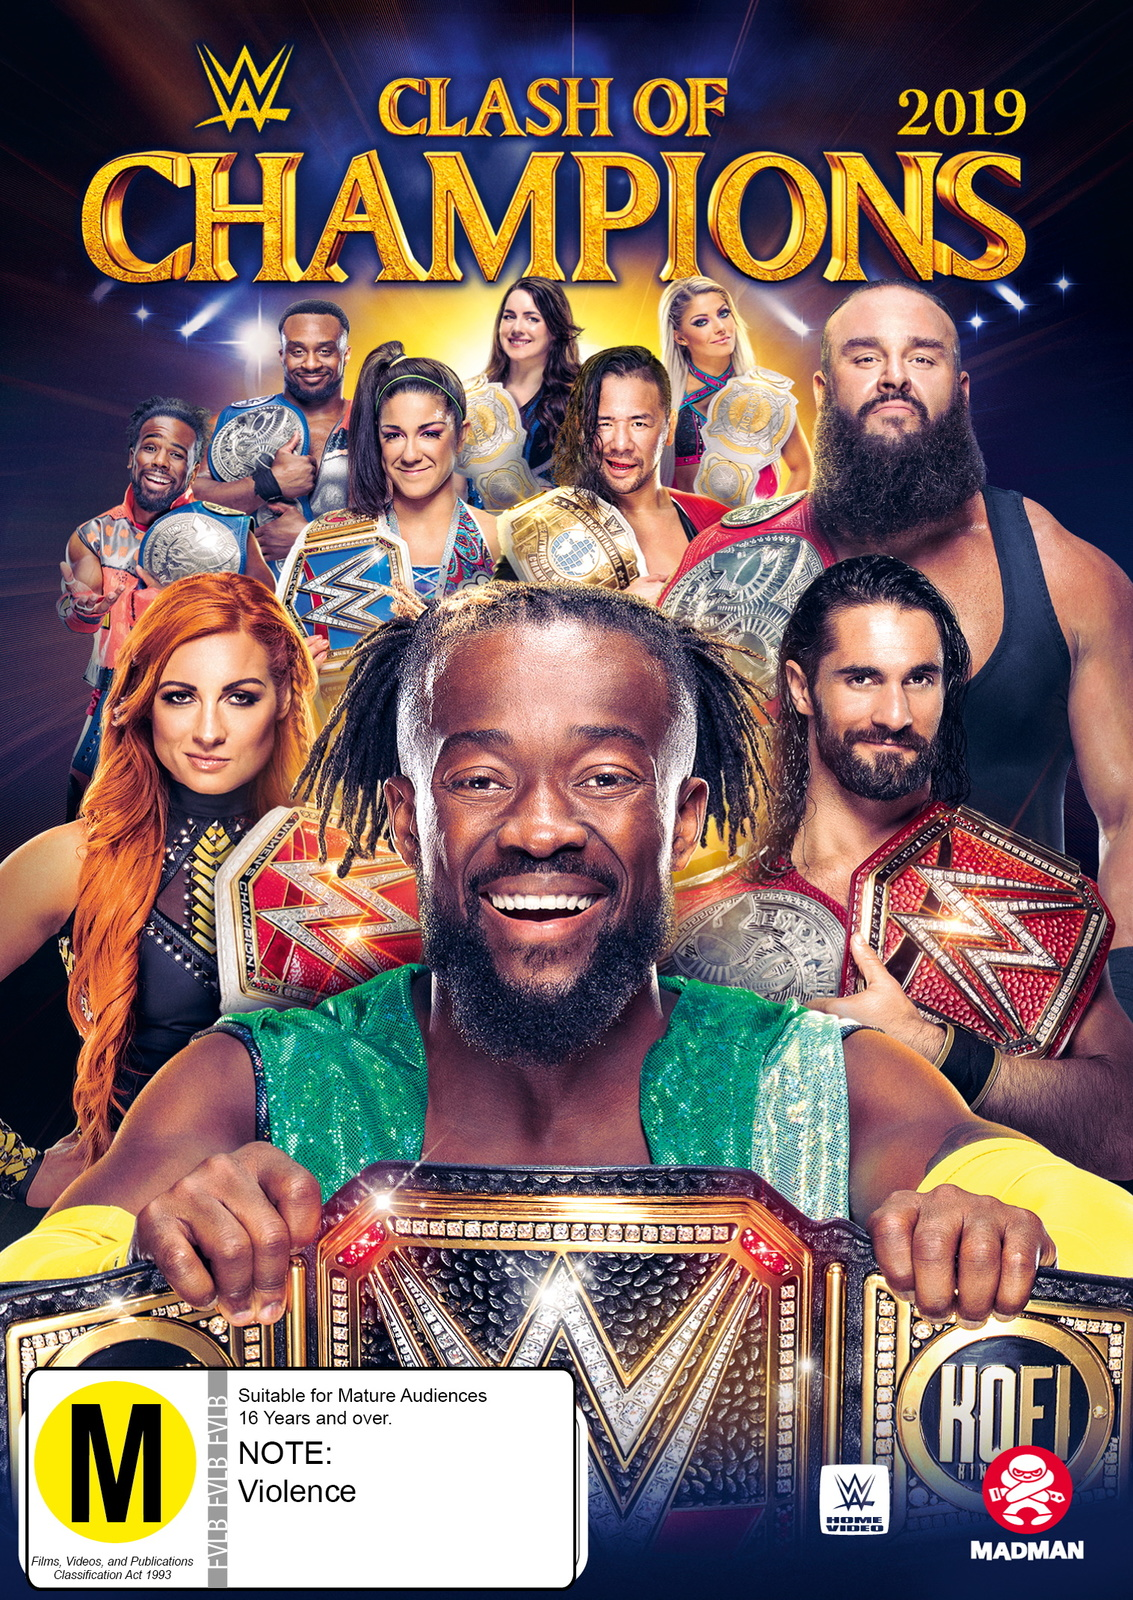 WWE: Clash of Champions 2019 on DVD image